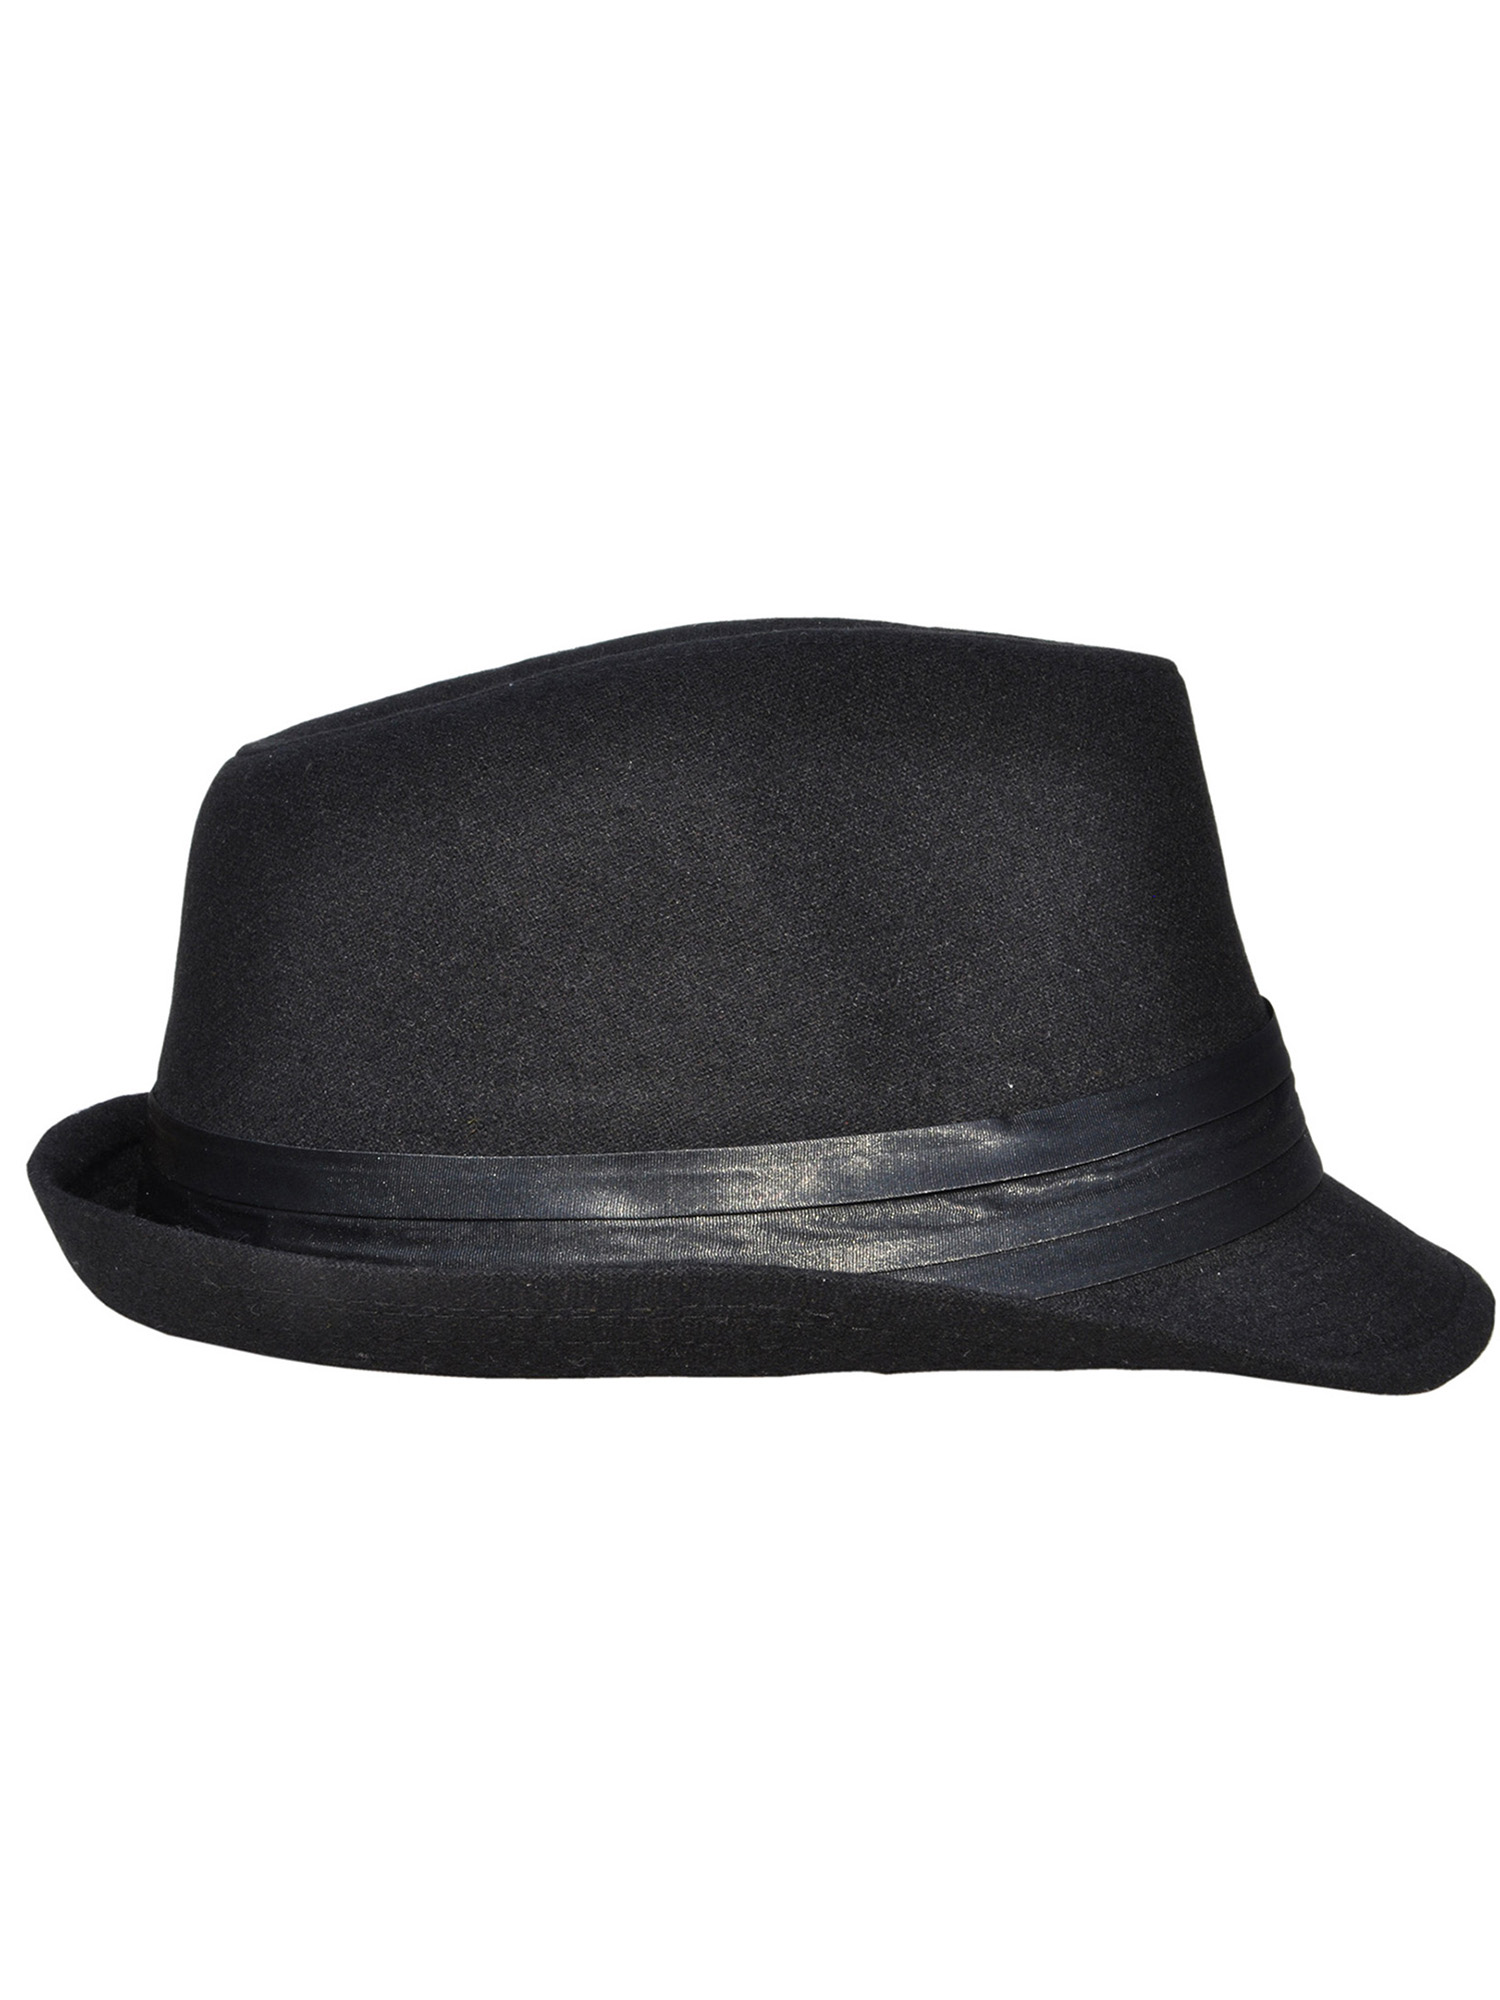 1e6212db9fb8 Simplicity - Mens Wool Fedora Trilby Hat Feather with Black Band -  Walmart.com